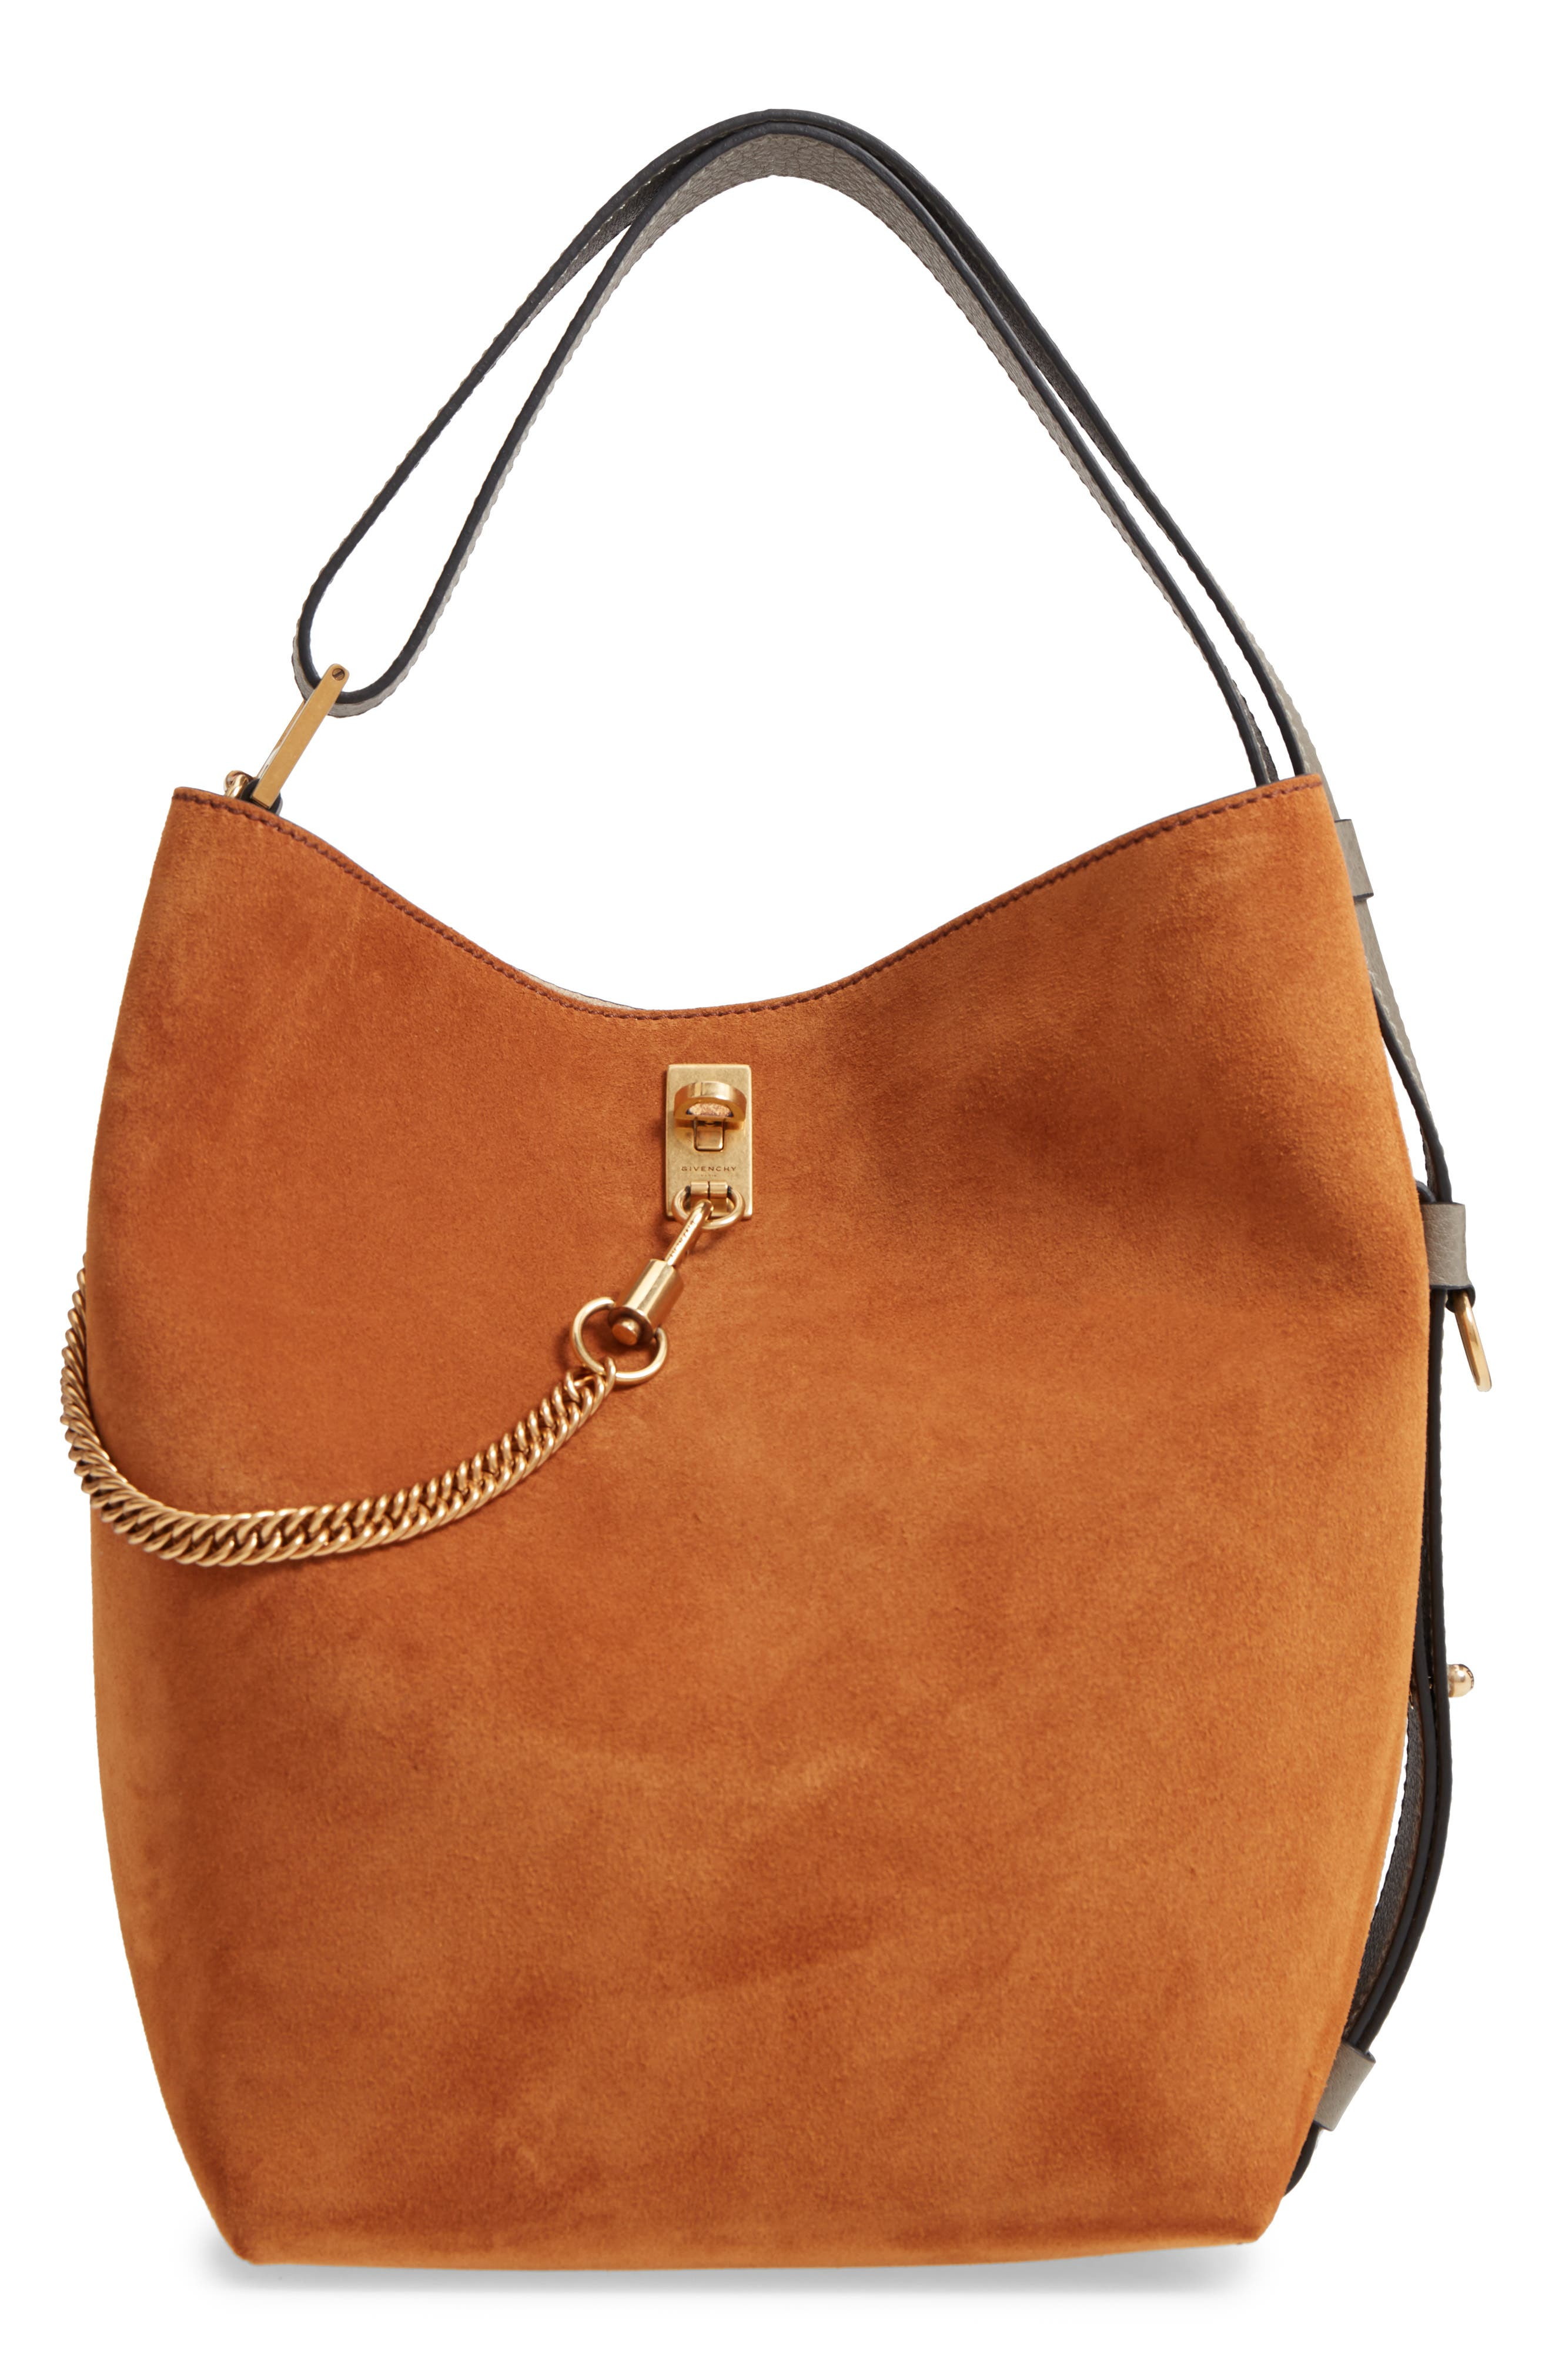 3aa8bd1eac8 Givenchy Shoulder Bags   Nordstrom